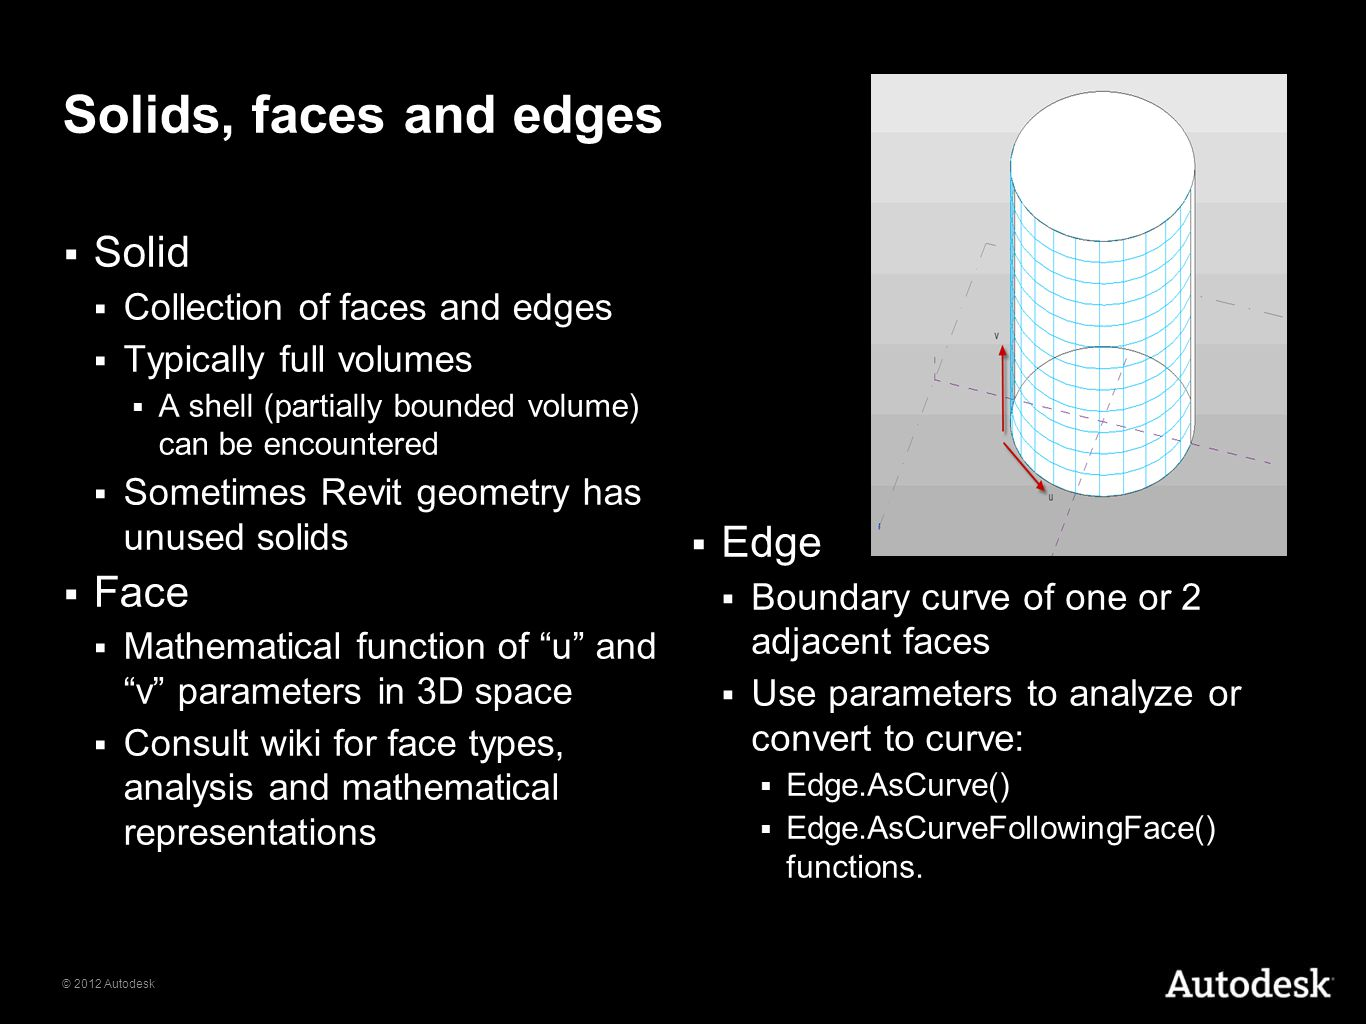 Solids, faces and edges Solid Edge Face Collection of faces and edges